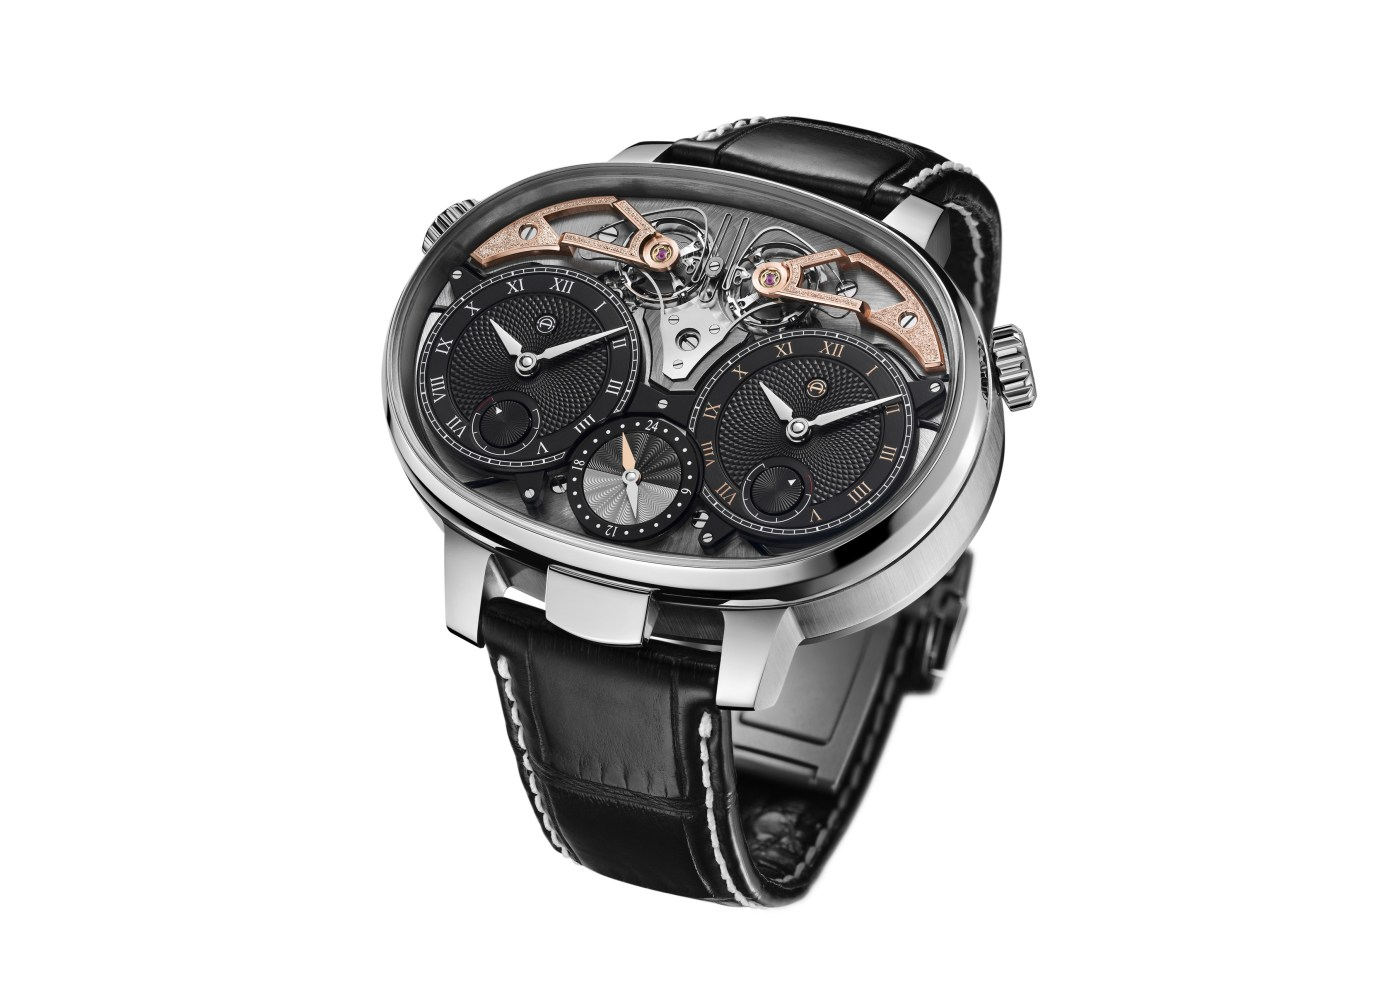 Armin Strom Dual Time Resonance Three-Quarter angle